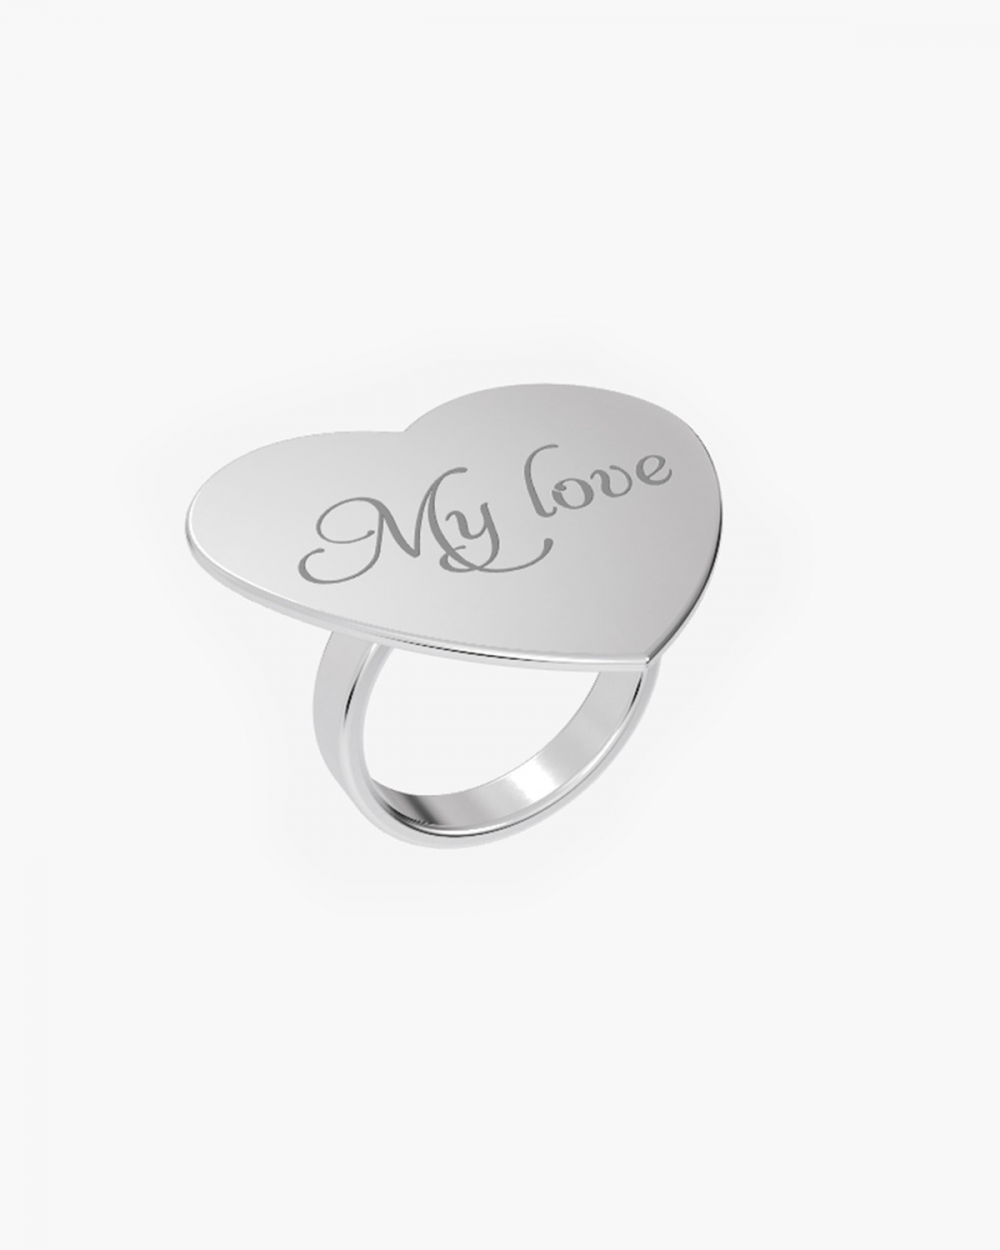 MYNOVE25 MEDIUM HEART PLATE RING 30 MM NOVE25